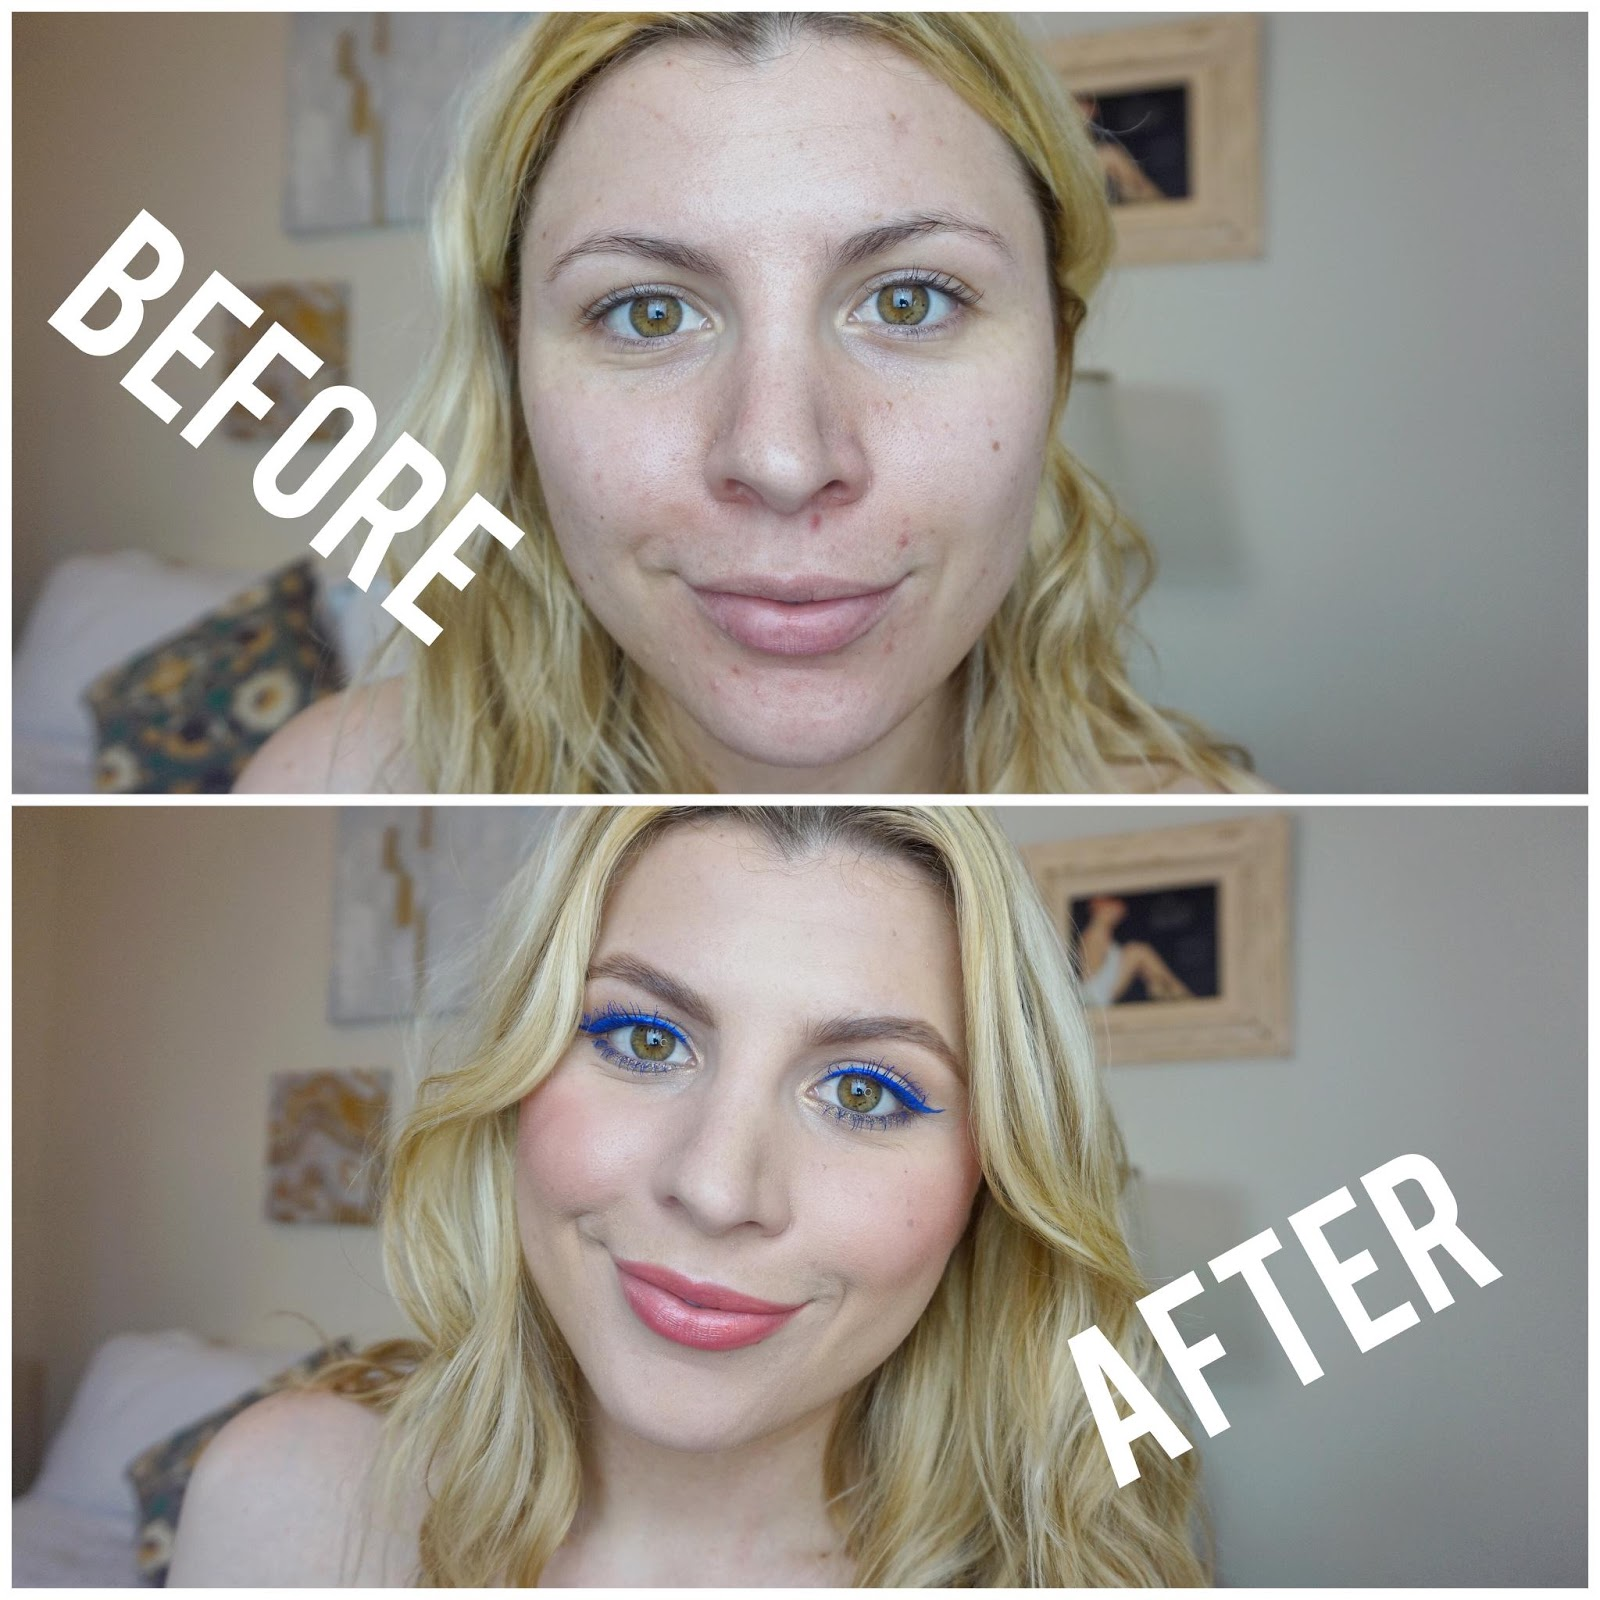 Before & After Makeup Transformation